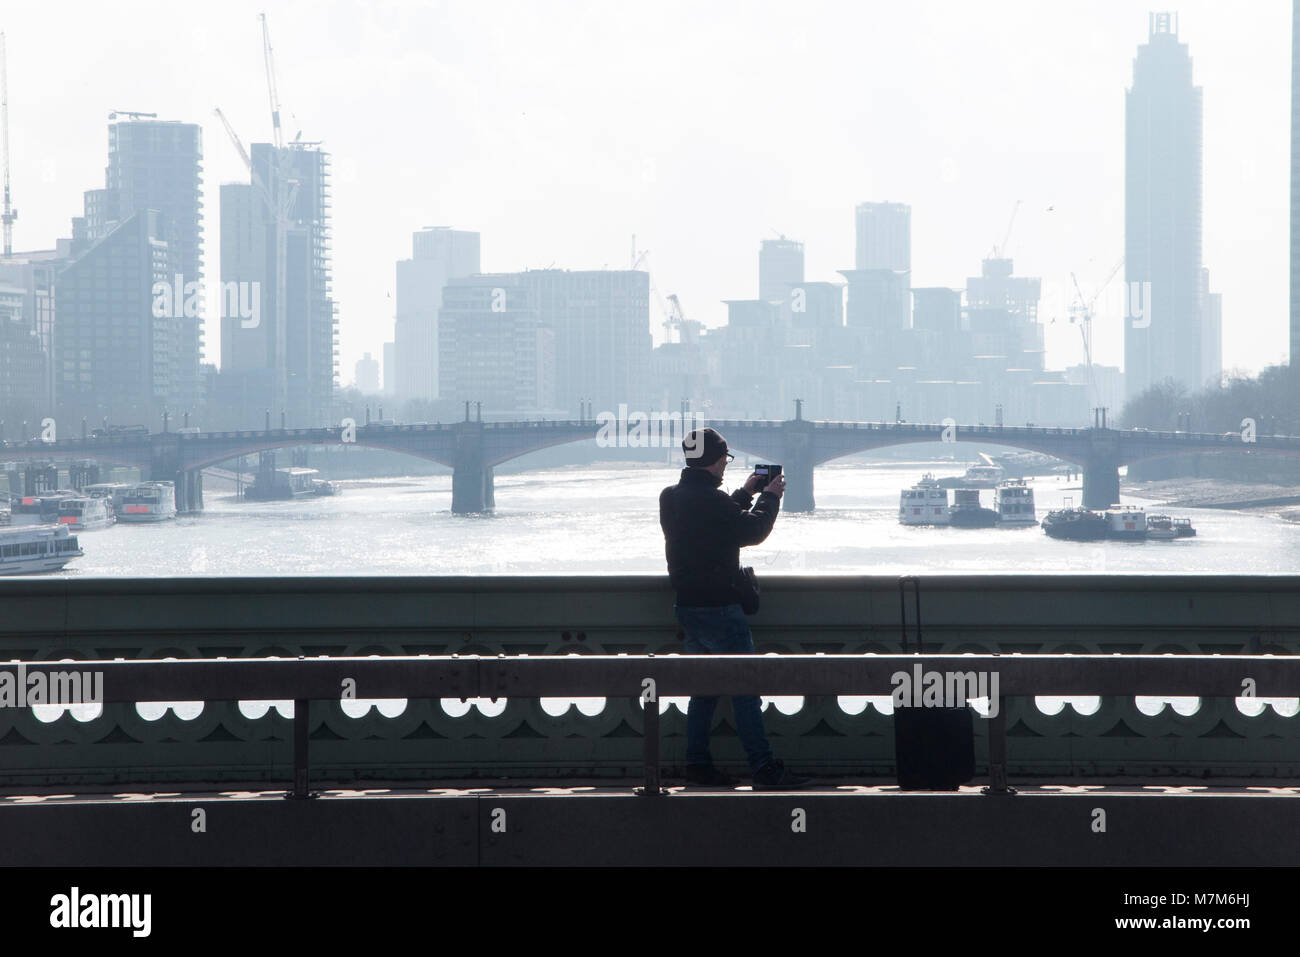 A man takes a photograph of the River Thames on a cold and misty morning - Stock Image